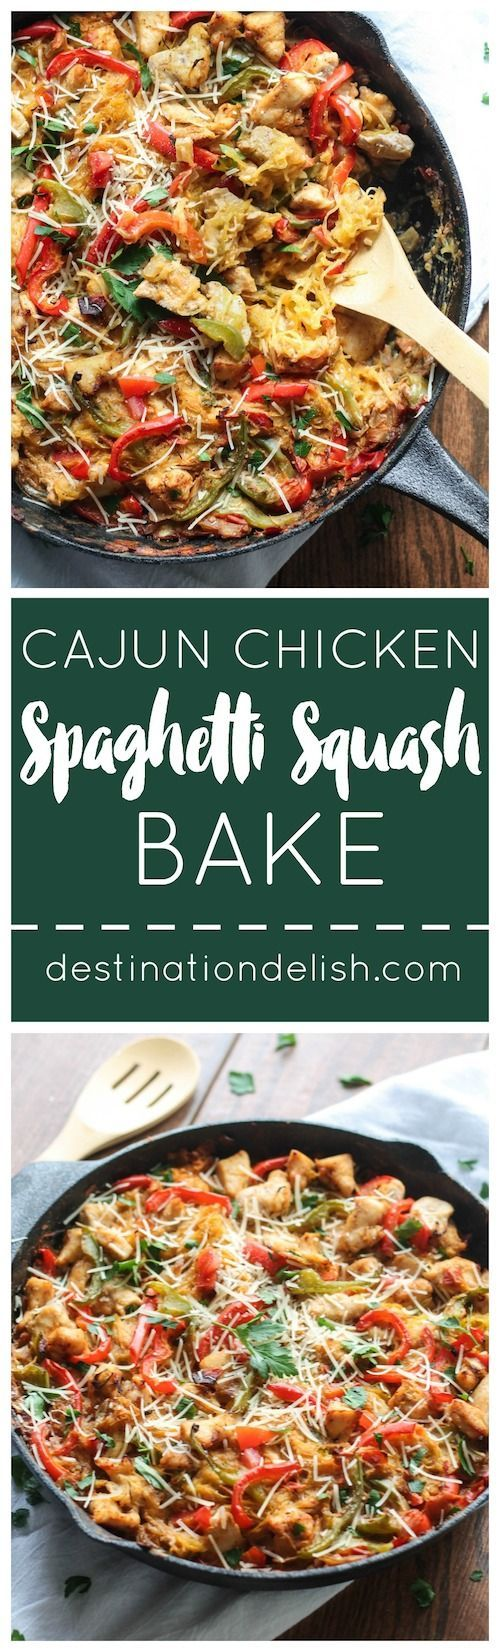 Cajun Chicken Spaghetti Squash Bake | Destination Delish – all the flavor of Cajun chicken pasta packed into a lightened-up, spaghetti squash casserole